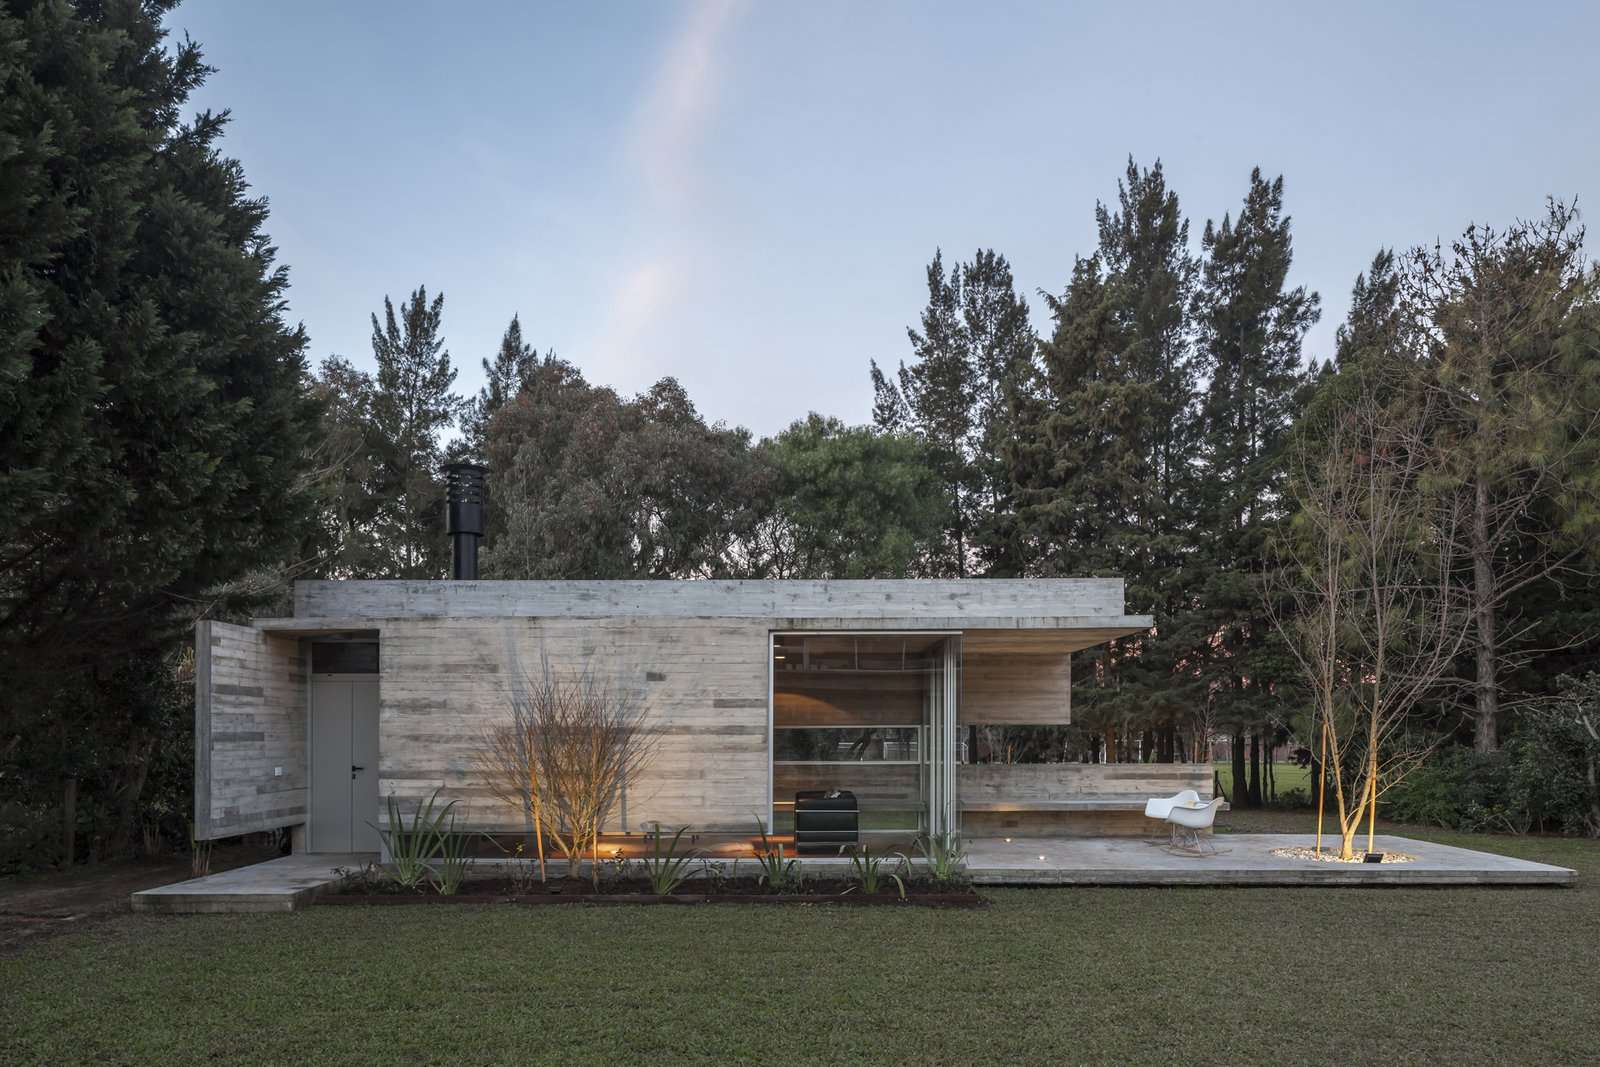 Outdoor, Back Yard, Trees, Grass, Gardens, and Concrete Patio, Porch, Deck Torcuato House Pavilion - Besonías Almeida arquitectos  Best Photos from Torcuato House Pavilion